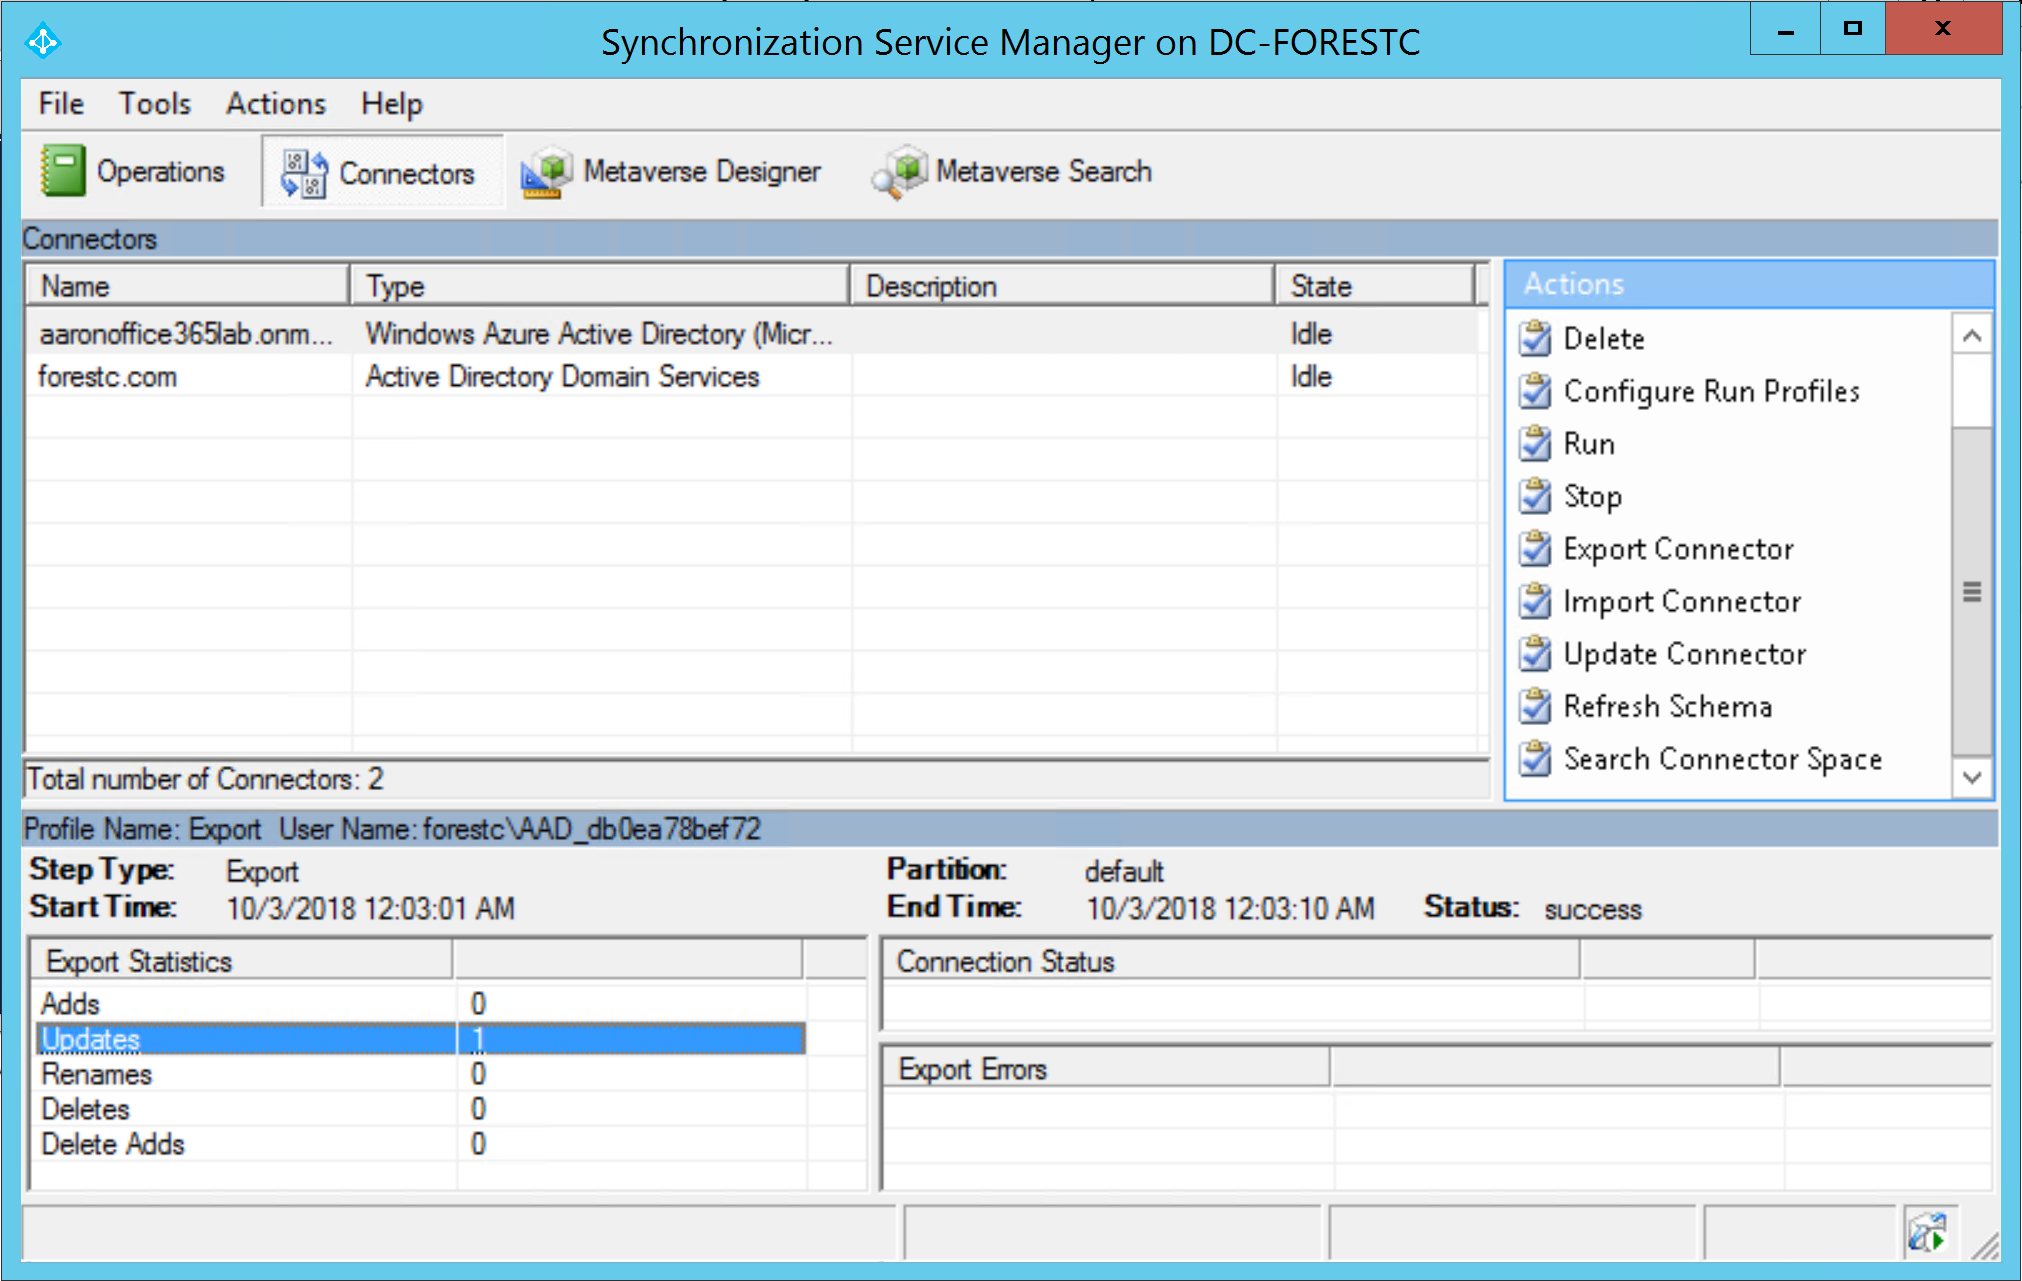 Sync Custom Attributes to Office 365 for Group-Based Licensing